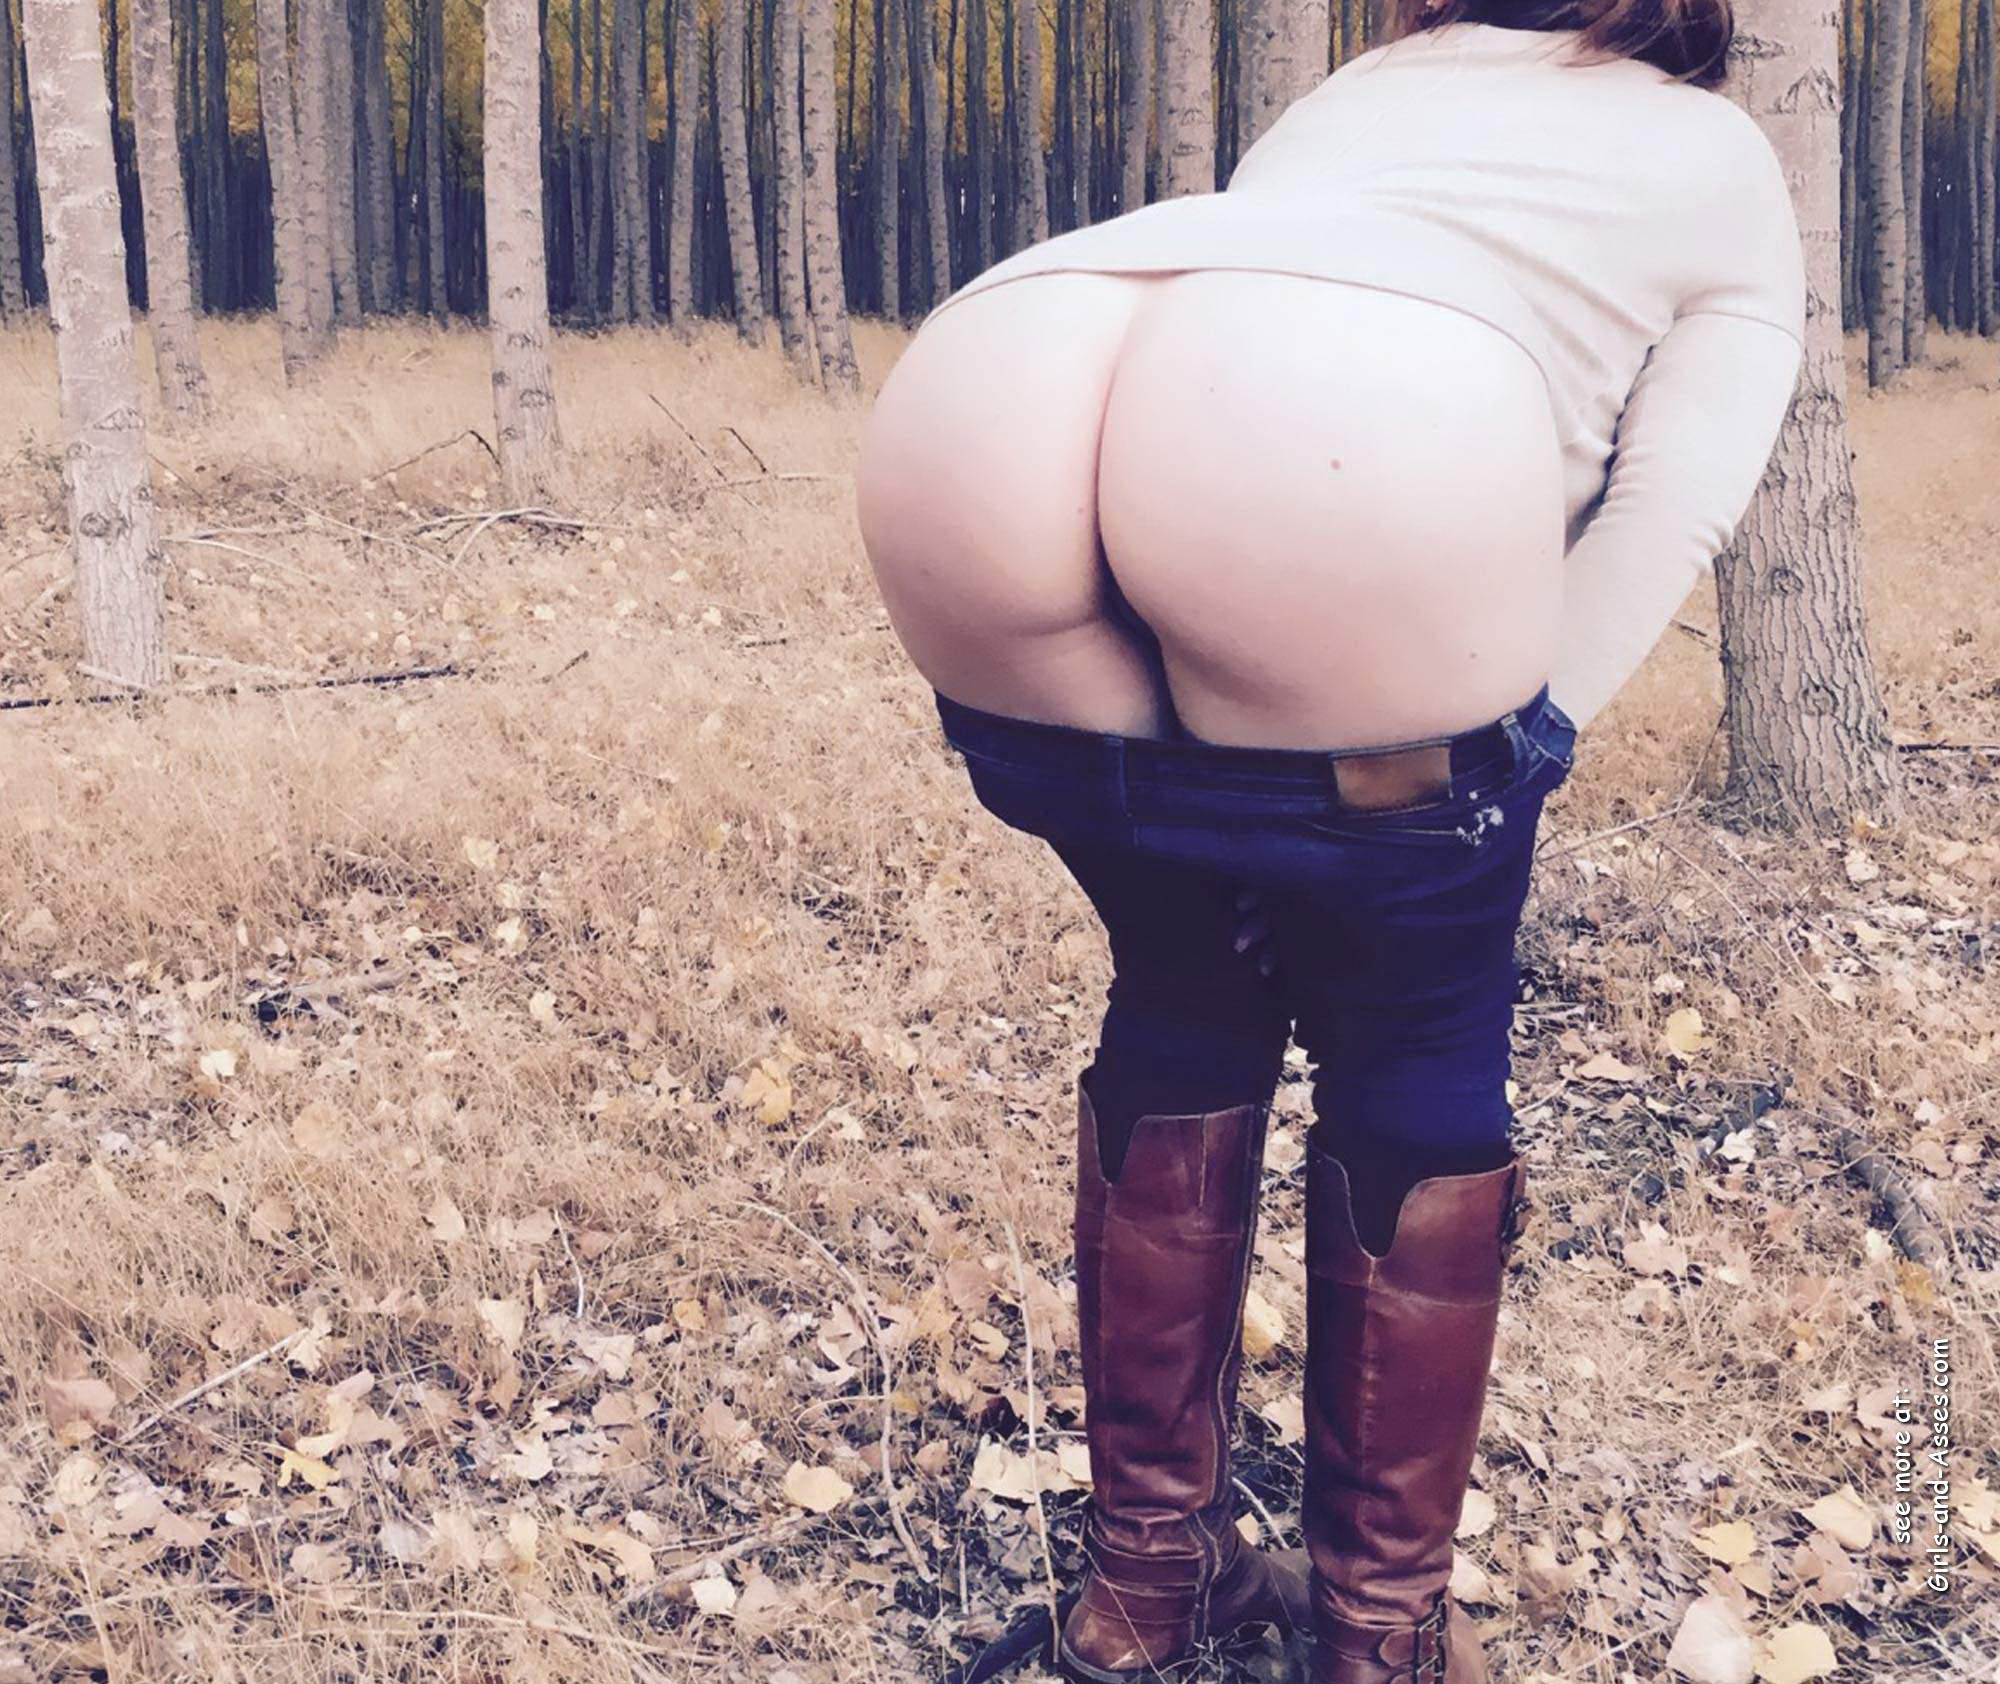 booty in the wild face down ass up picture 02259